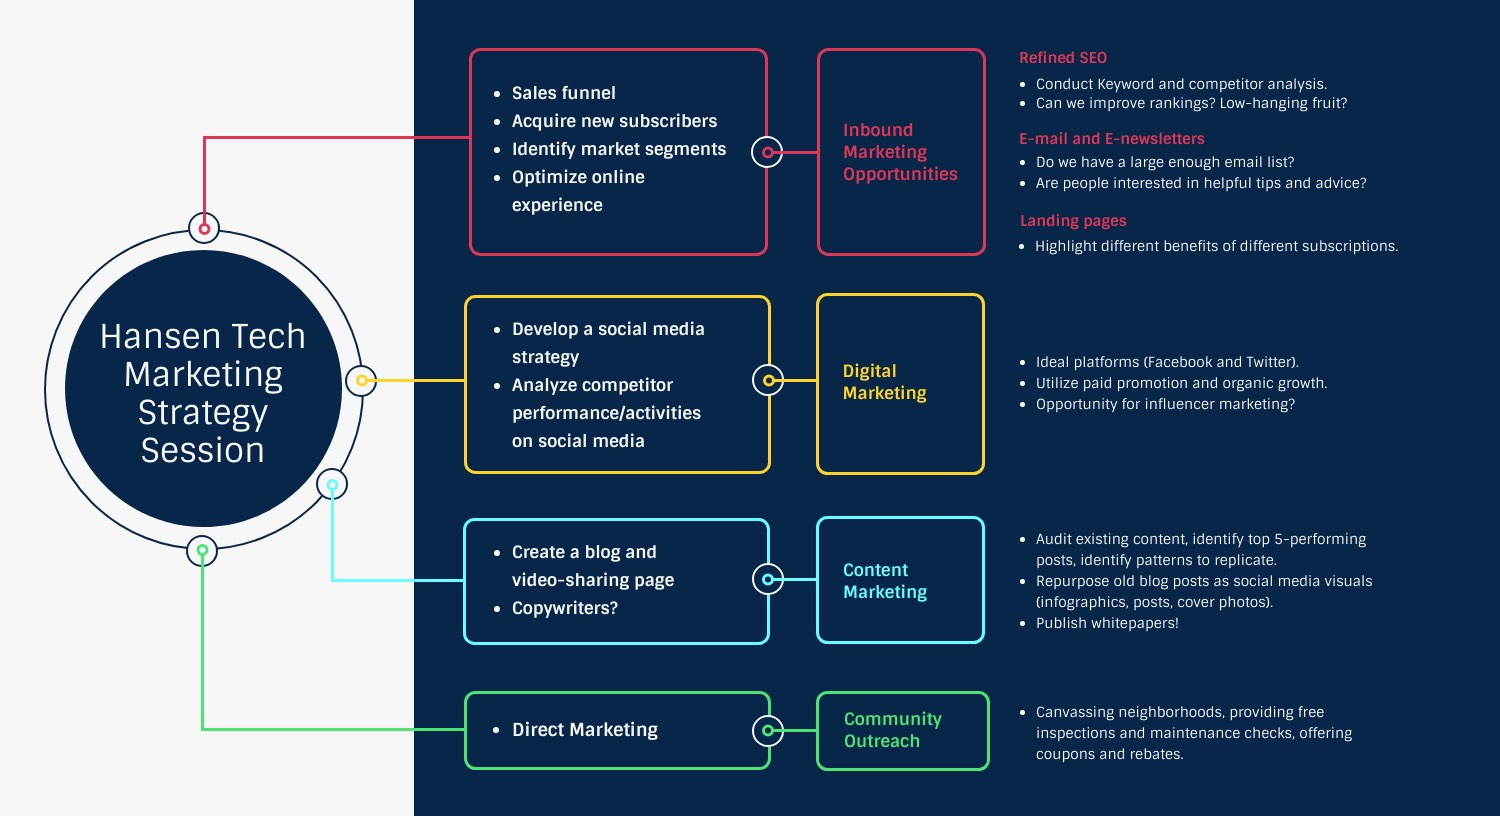 21 Amazing Mind Map Templates You Can Use Now